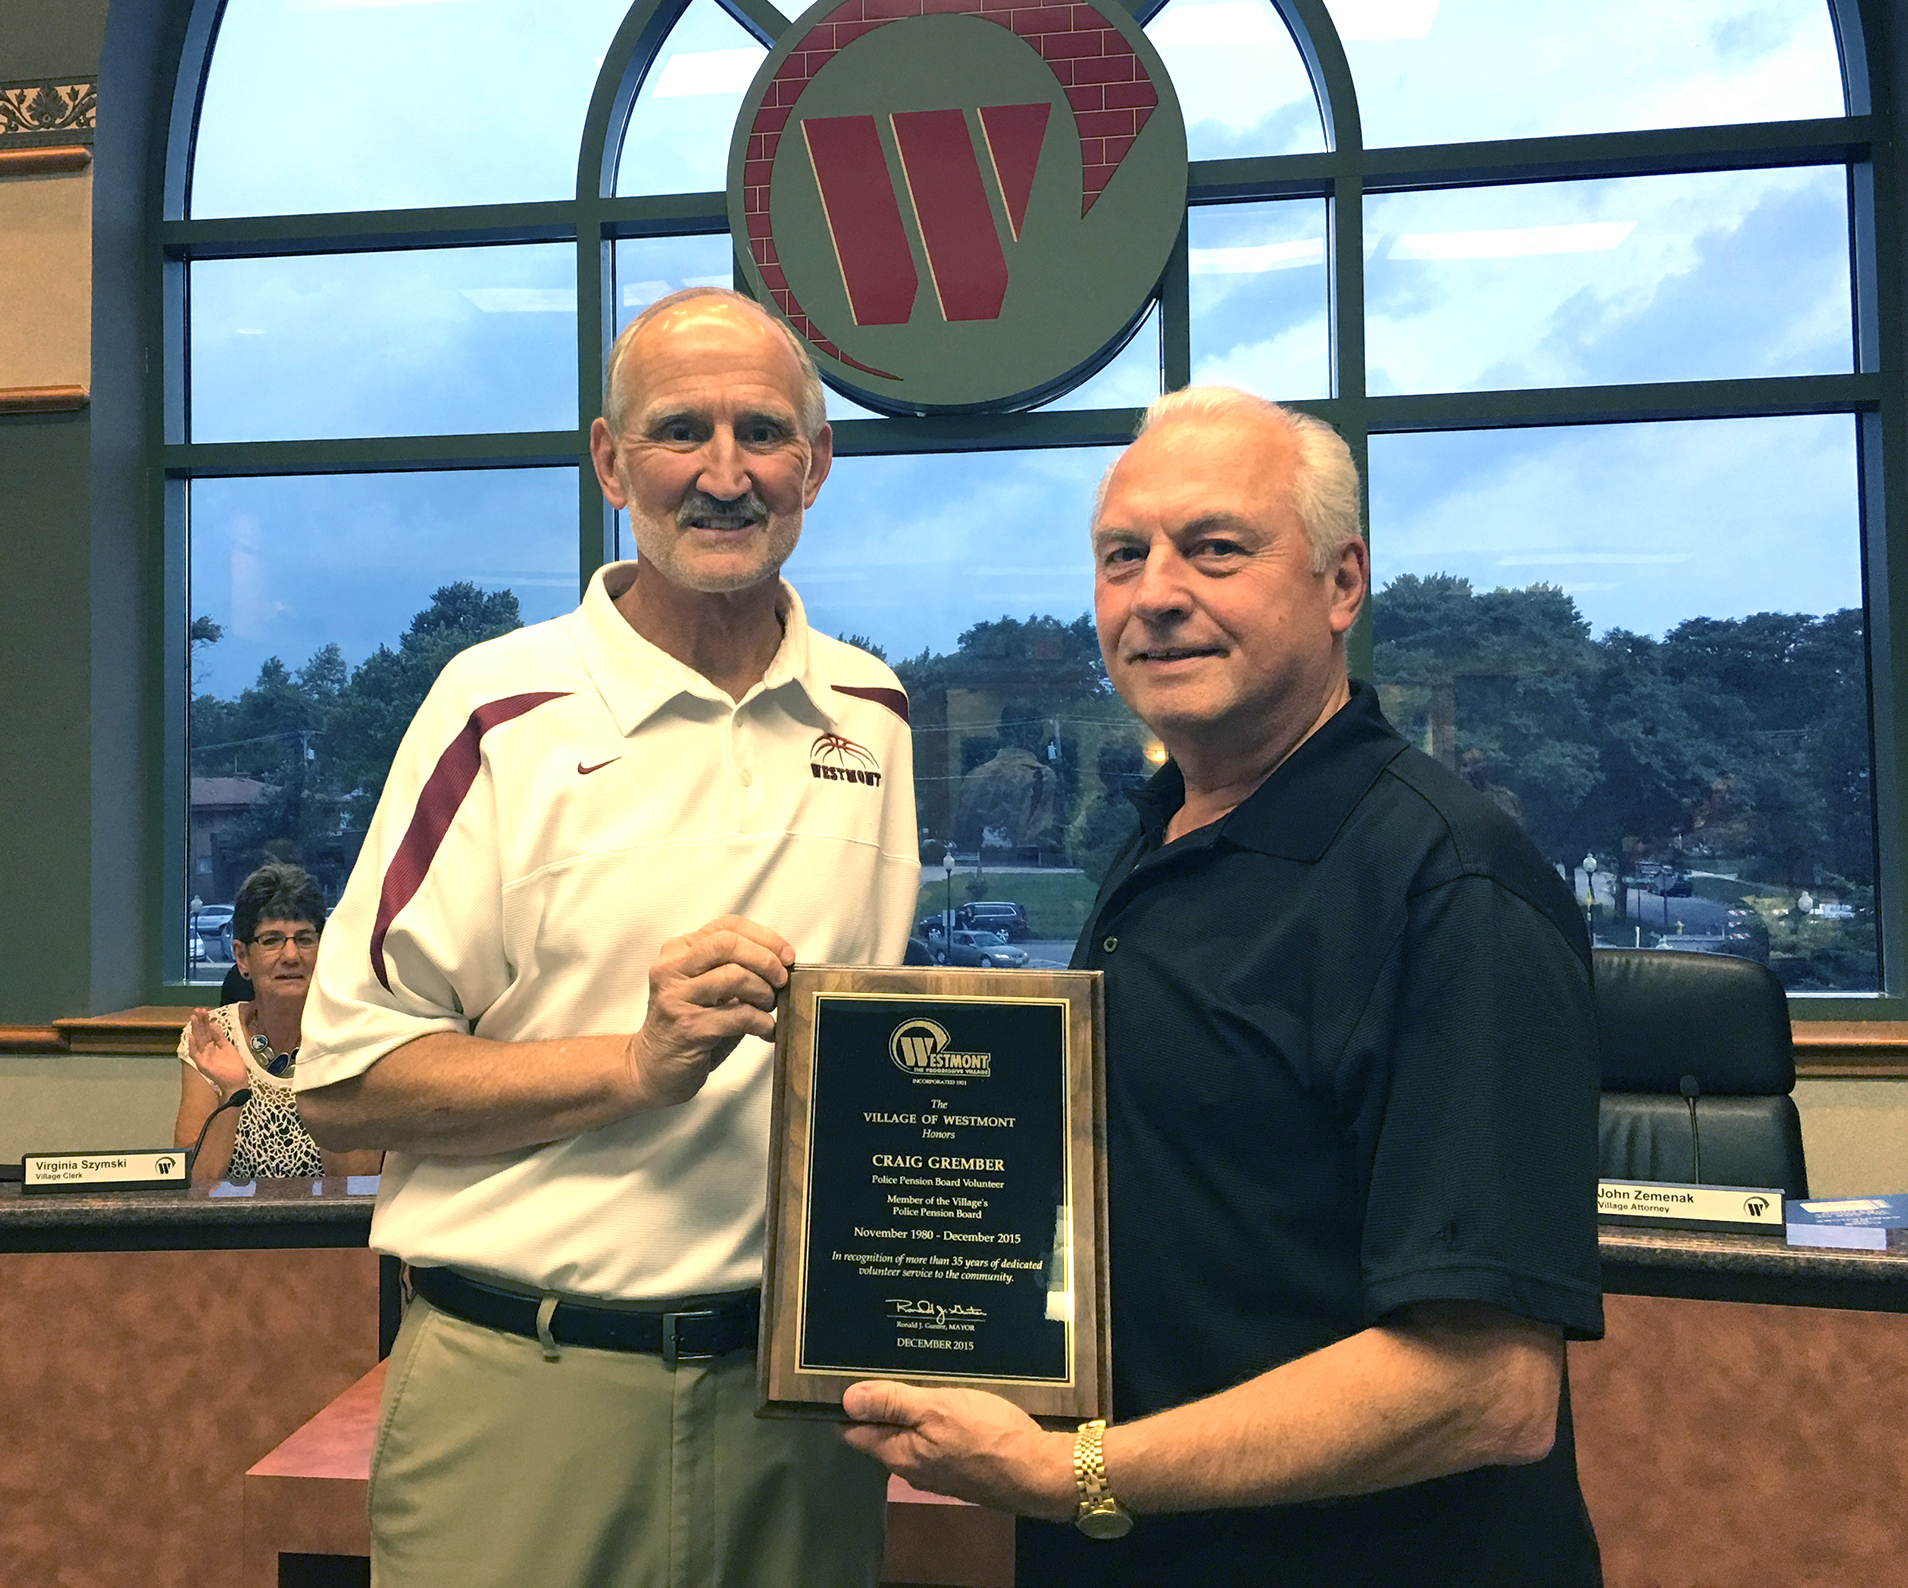 Grember Honored For Service